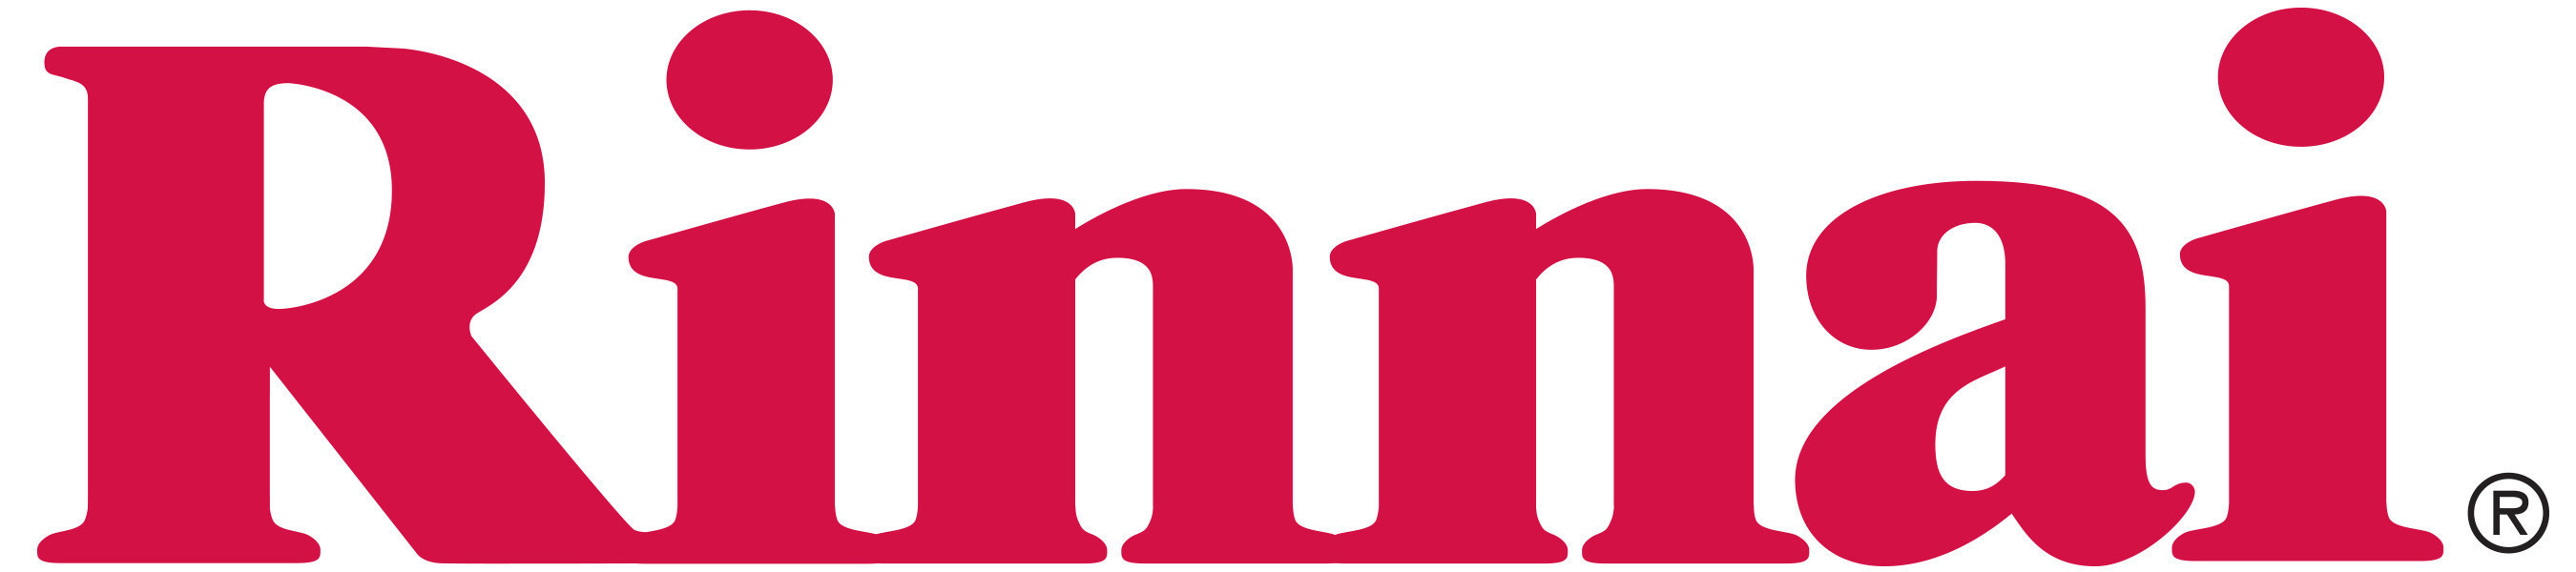 As the technology leader in its industry, Rinnai is the number-one selling brand of tankless water heaters in ...